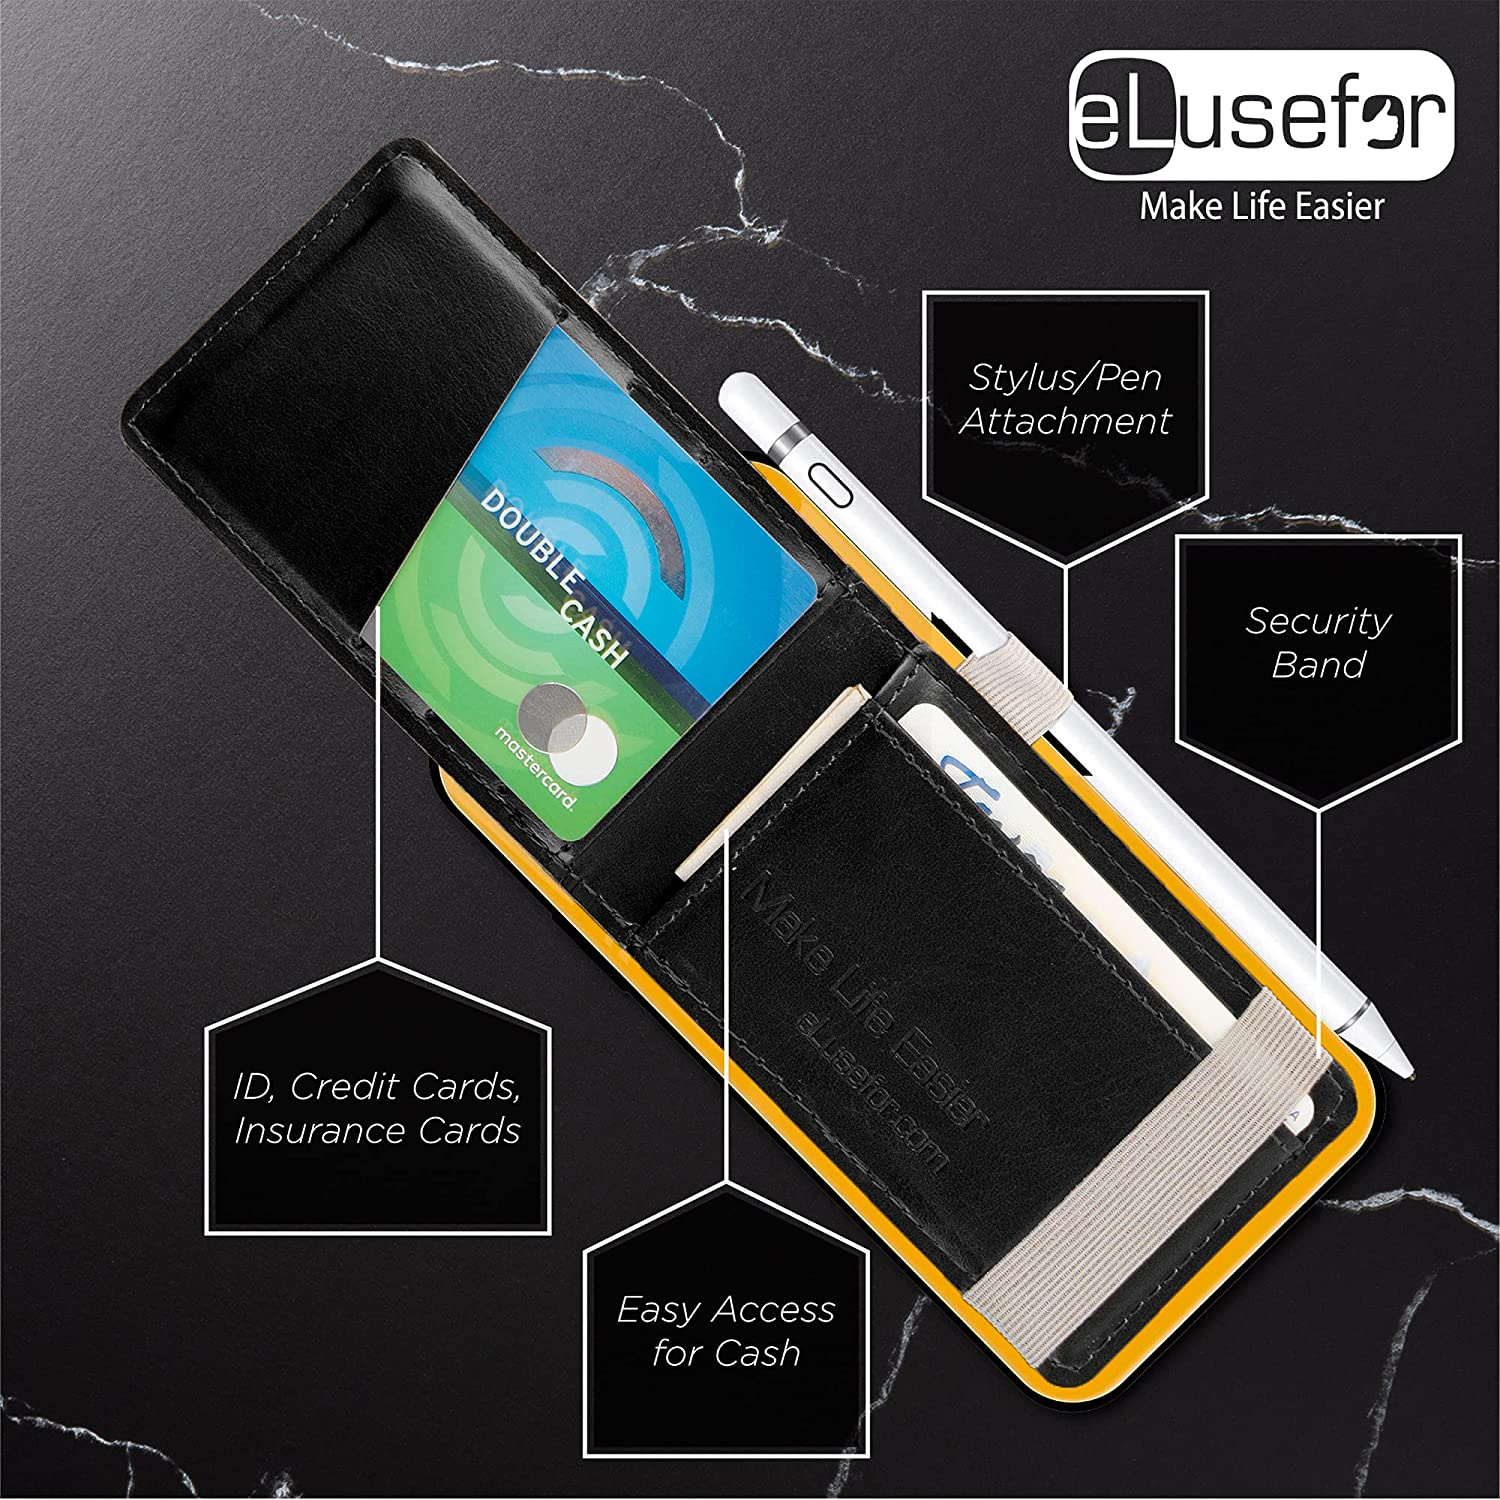 Buy eLusefor Stick-On Phone Wallet & Card Holder for Back of iPhone or Android  Case (Black) Online in USA. B096HCDDYX